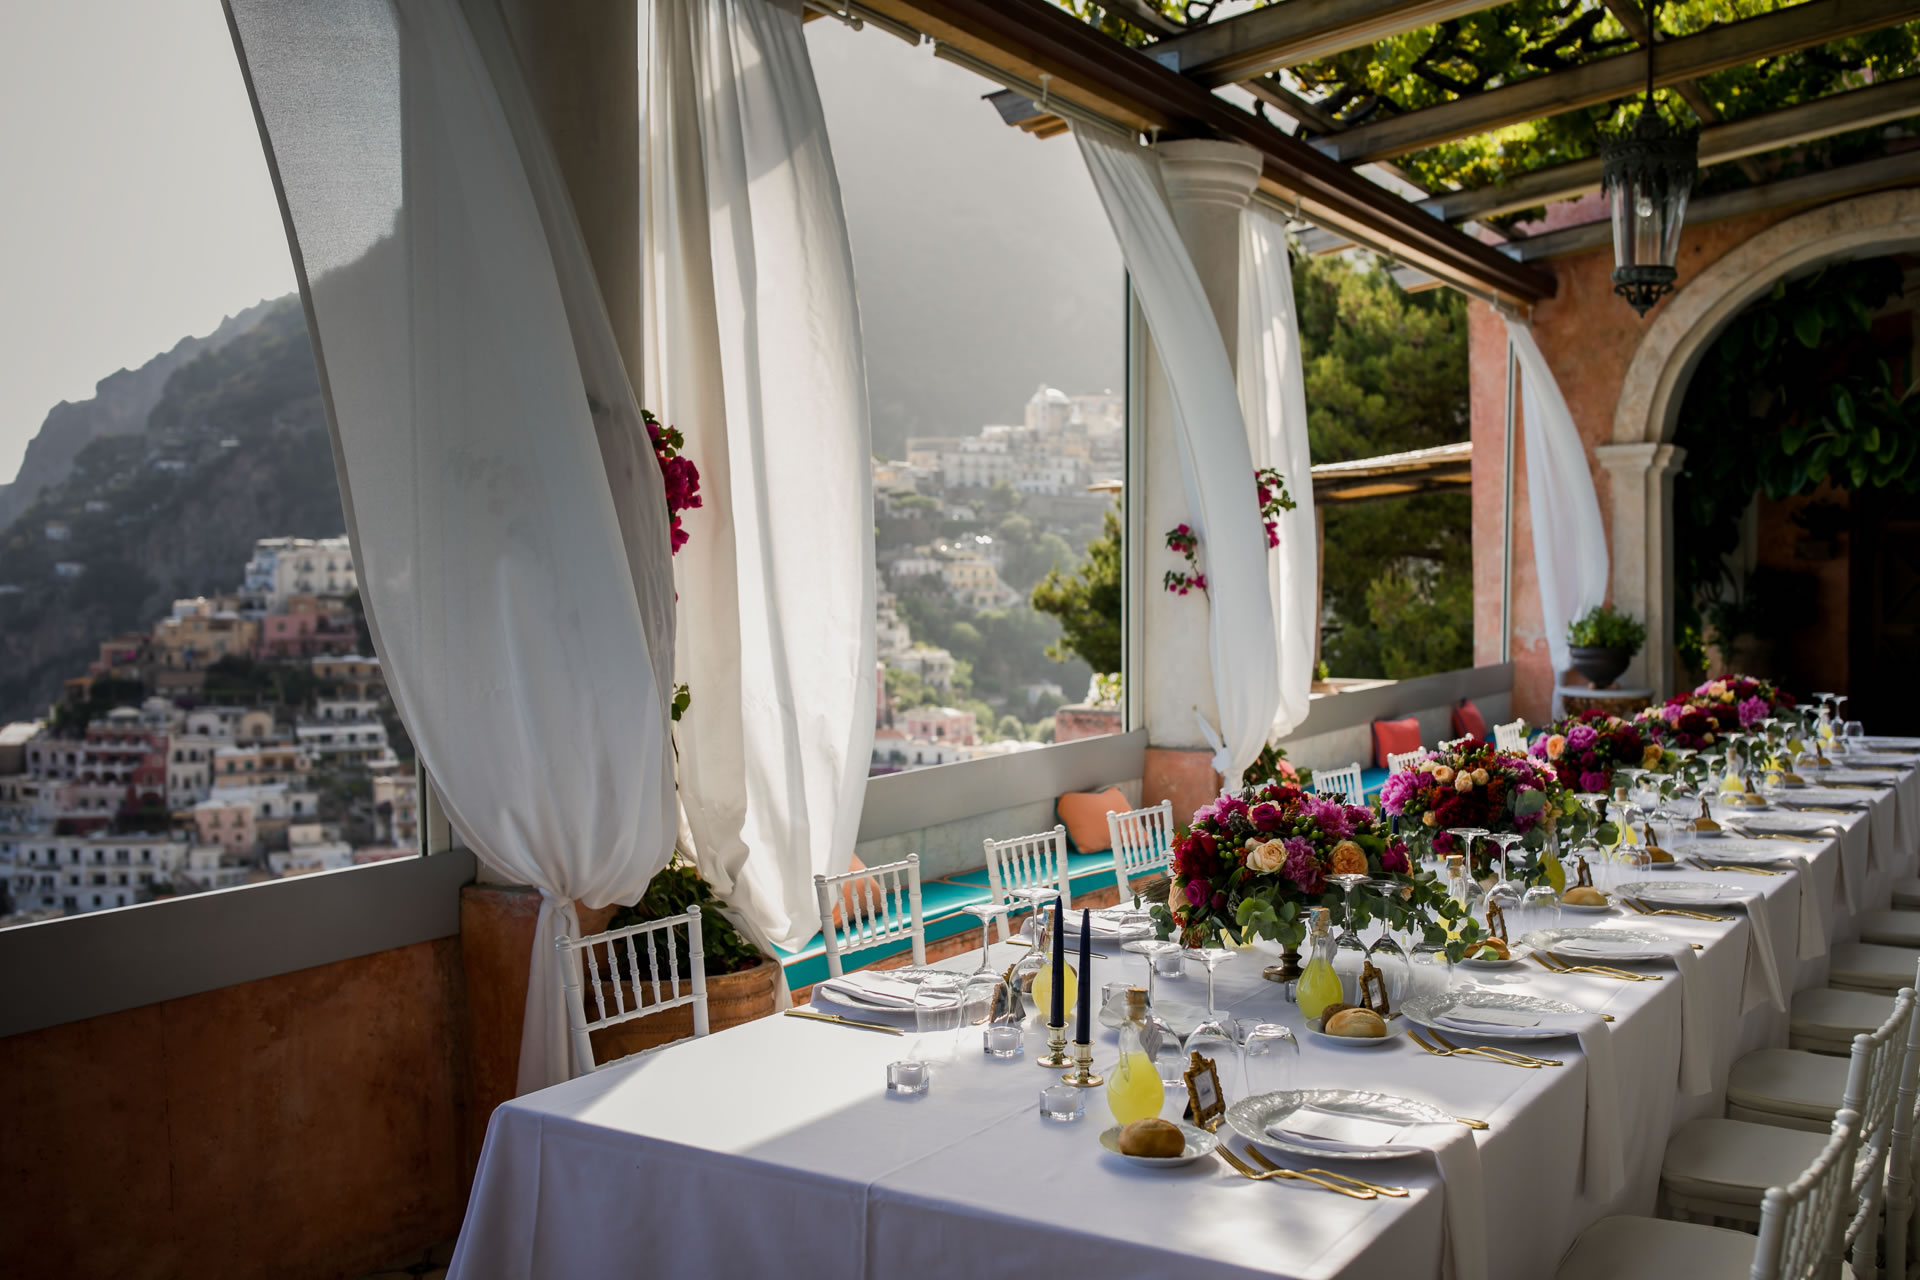 Table - 54 :: Wedding in Positano. Sea and love :: Luxury wedding photography - 53 :: Table - 54